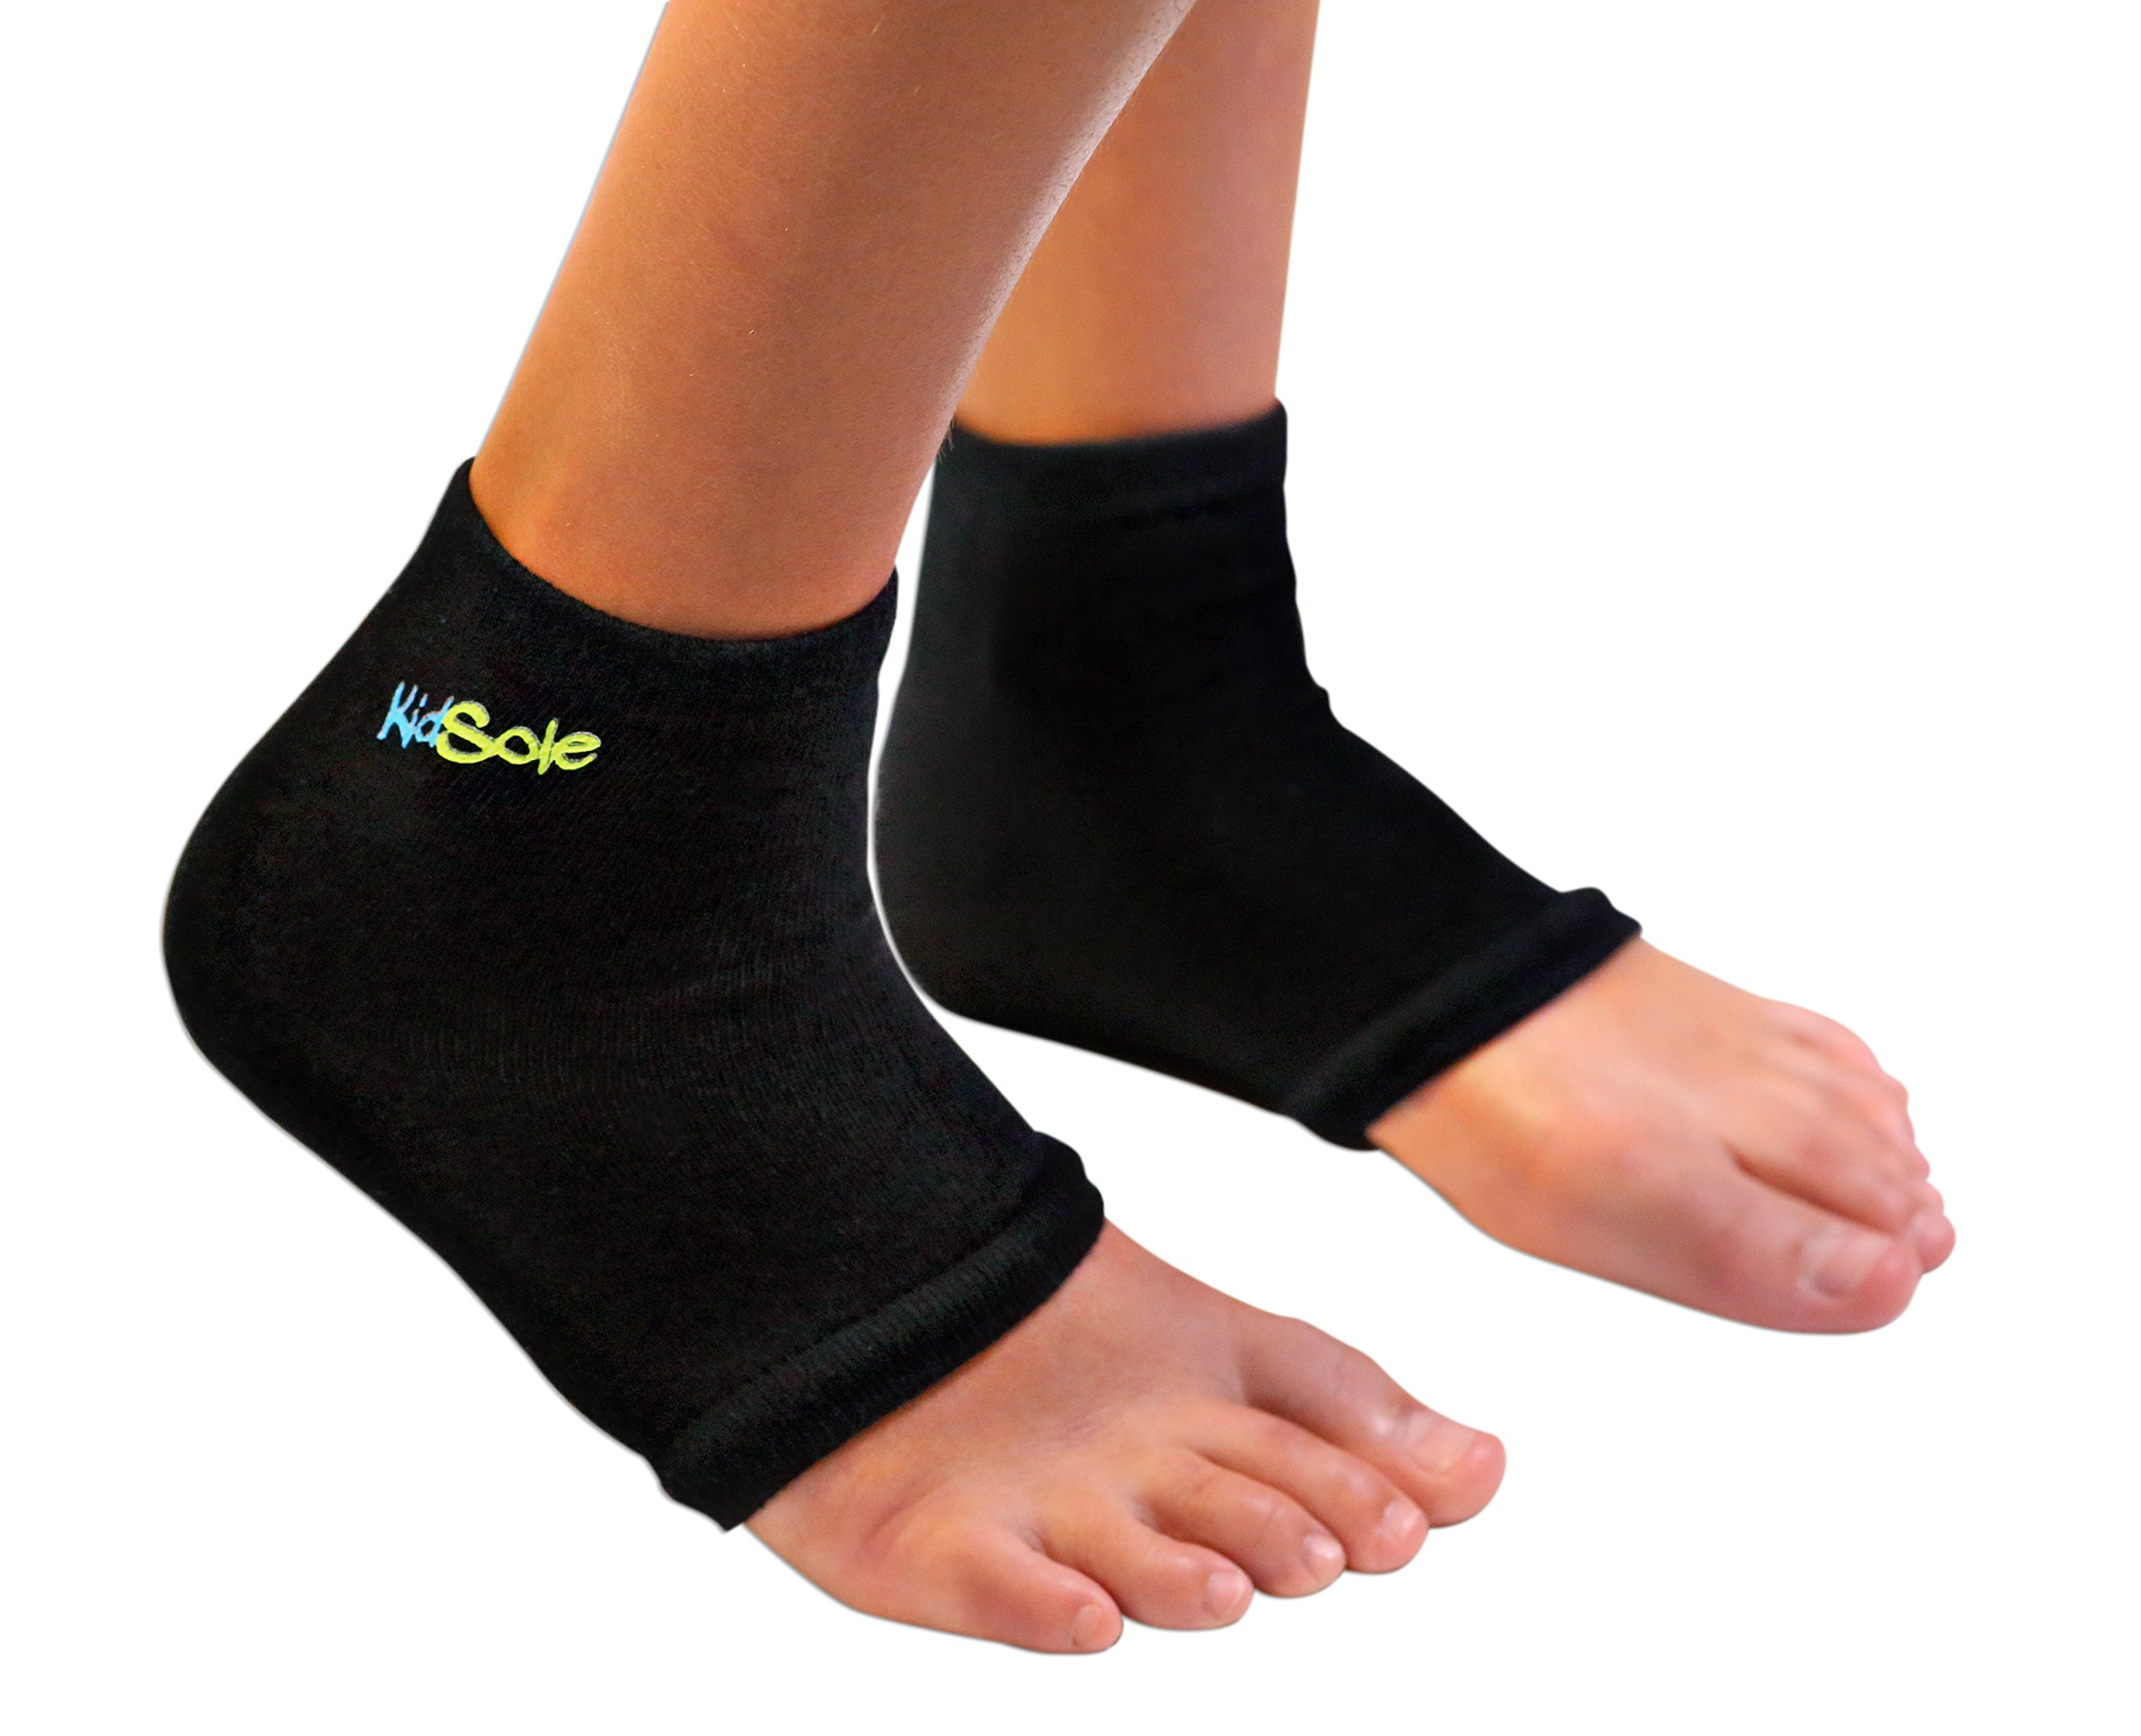 KidSole RX Gel Sports Sock for Kids with Heel Sensitivity from Severs Disease, Plantar Fasciitis. US Kid's Sizes 2-7 (Black) by KidSole (Image #1)